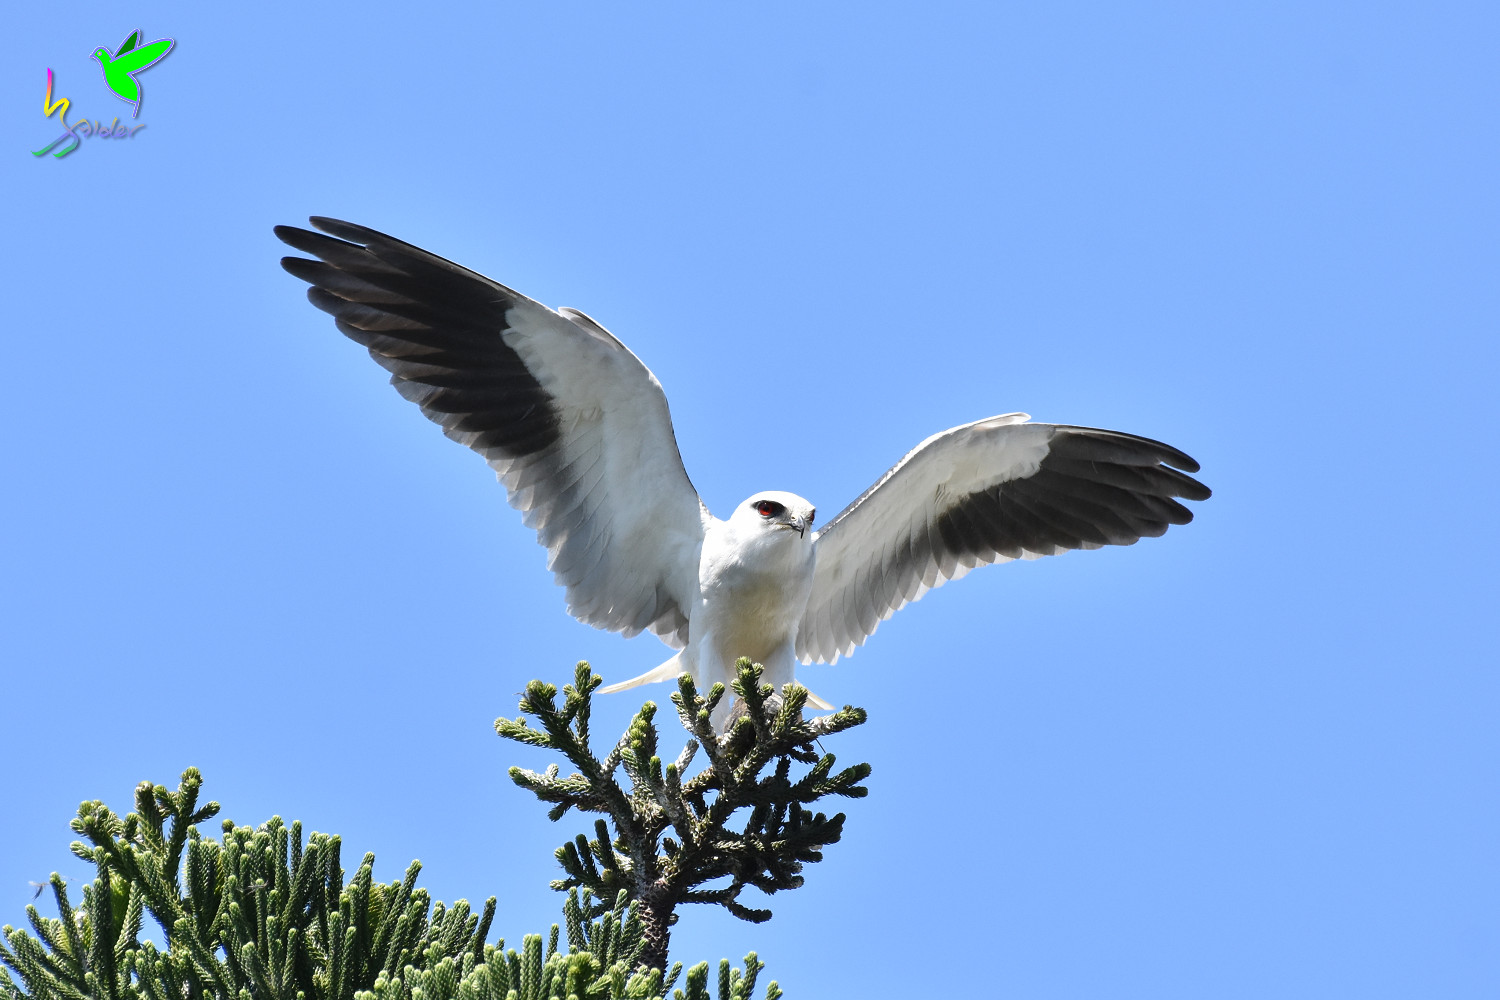 Black-winged_Kite_1869